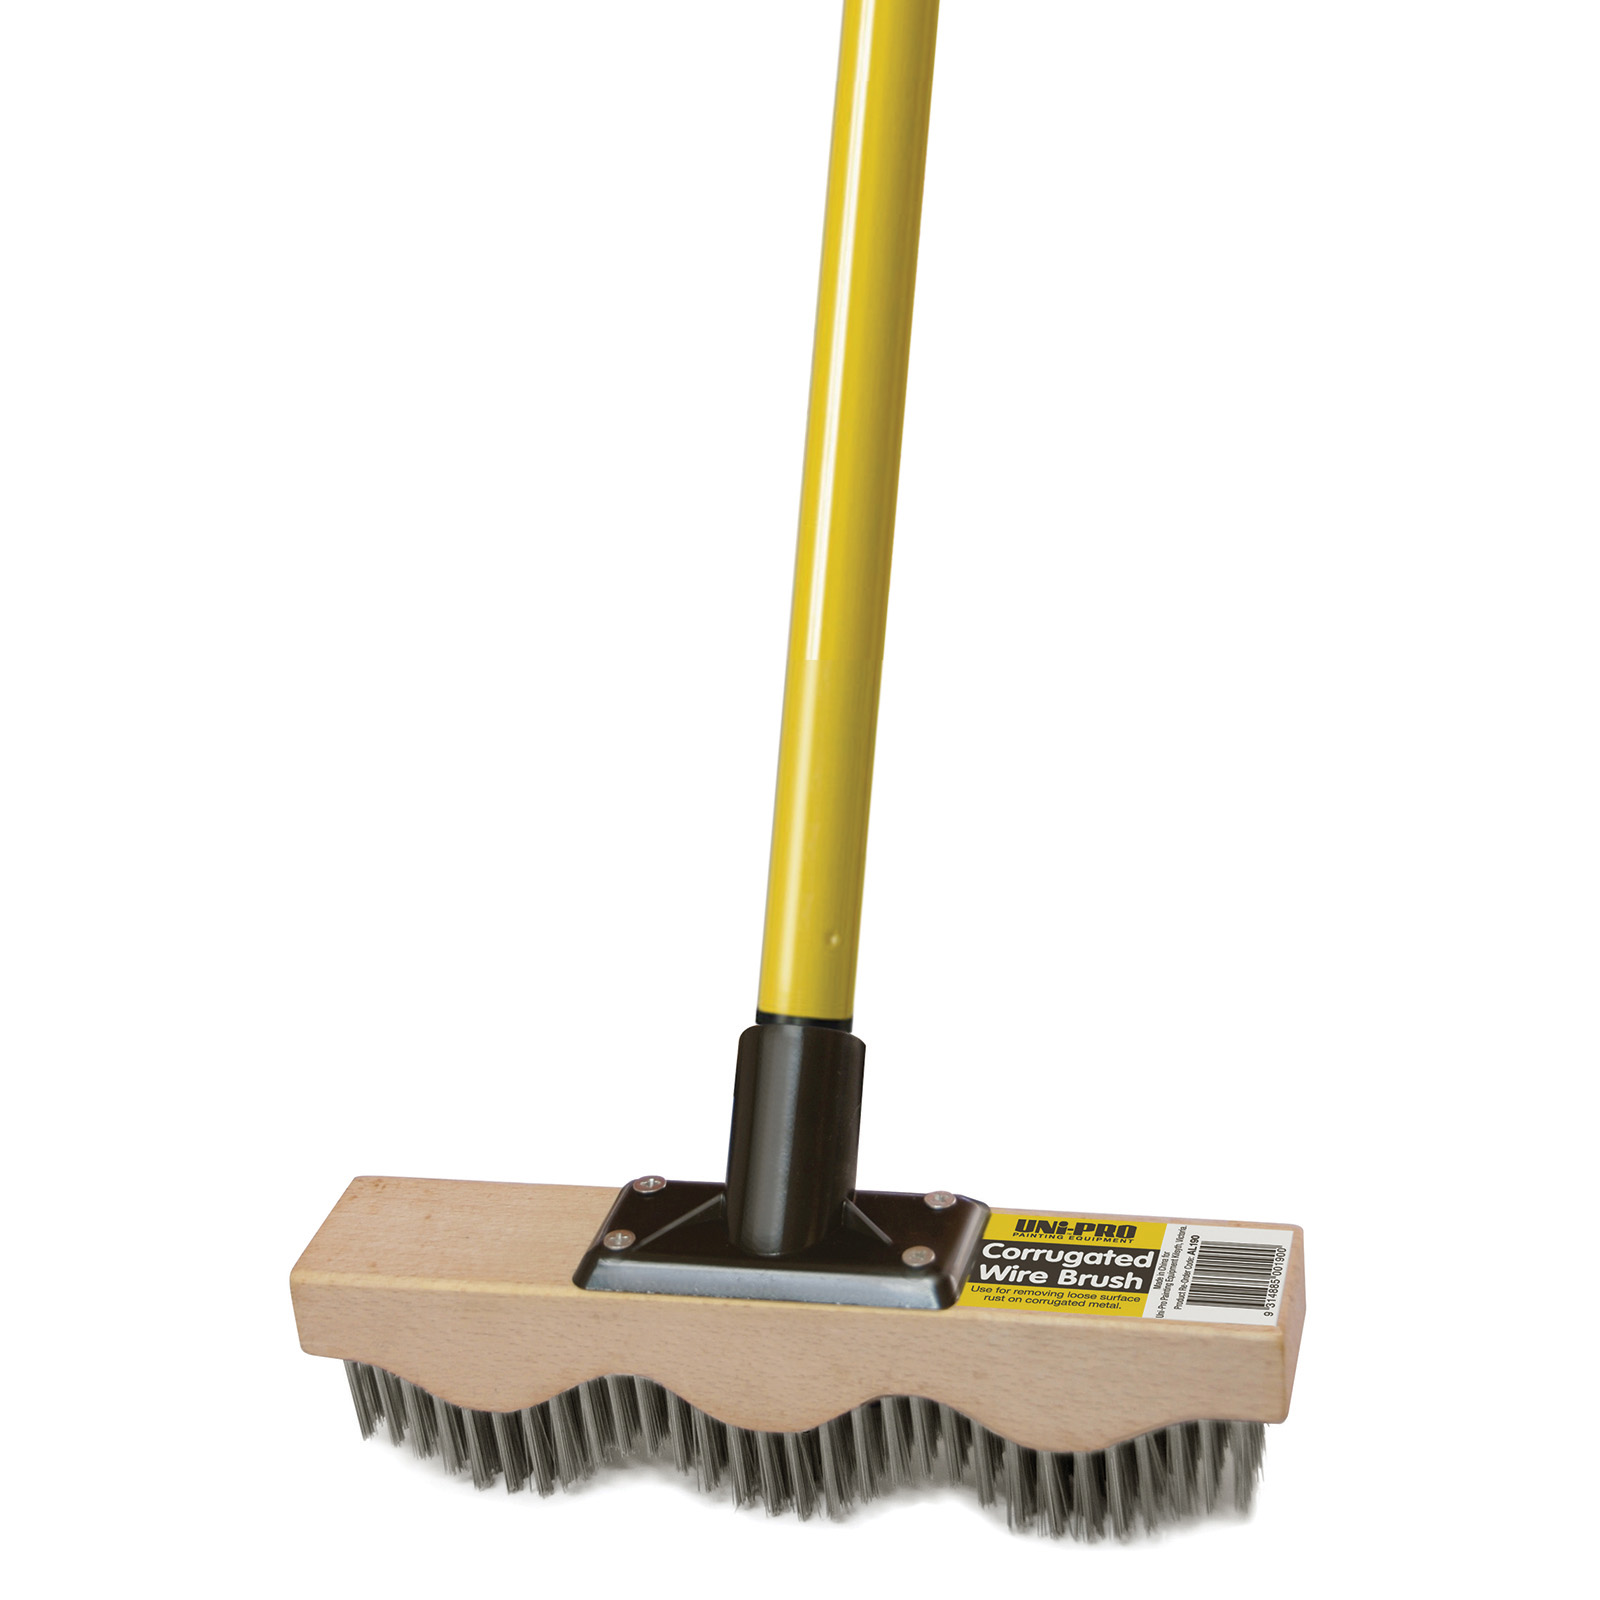 UNi-PRO Corrugated Wire Brush With Pole